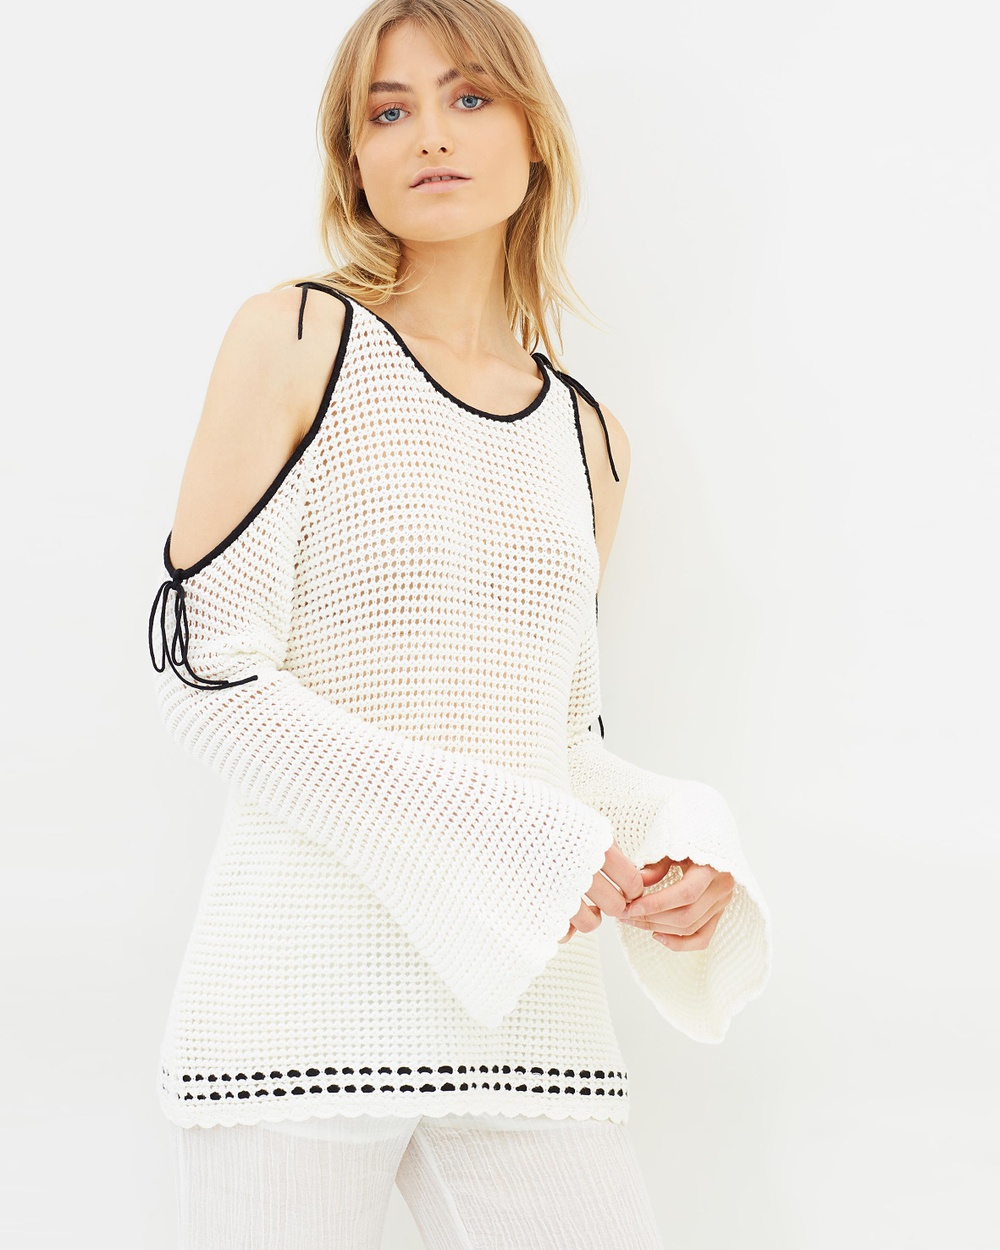 Hansen & Gretel Kelsey Crochet Top Tops White & Black Kelsey Crochet Top